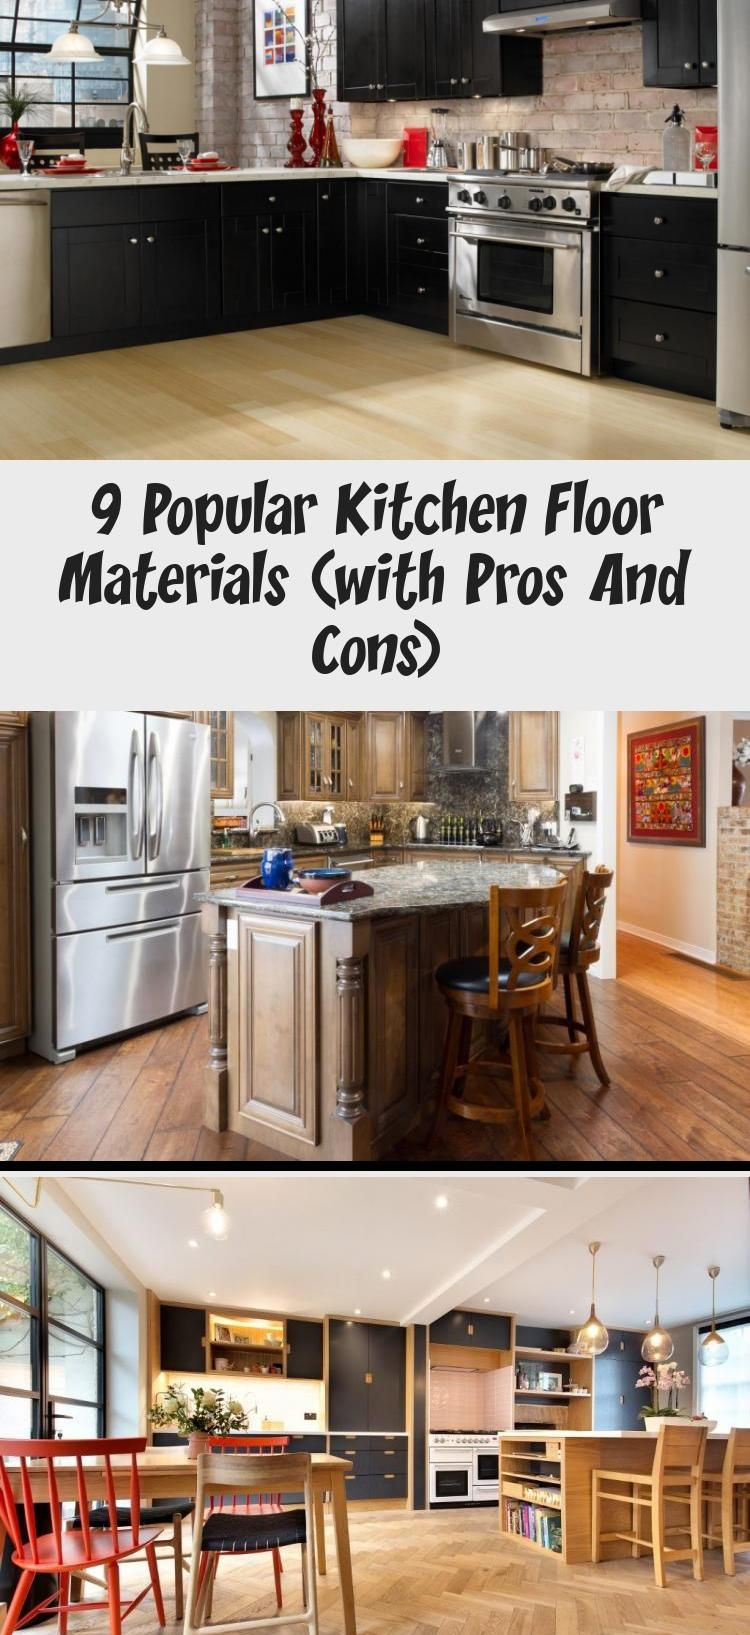 9 Popular Kitchen Floor Materials With Pros And Cons 2020